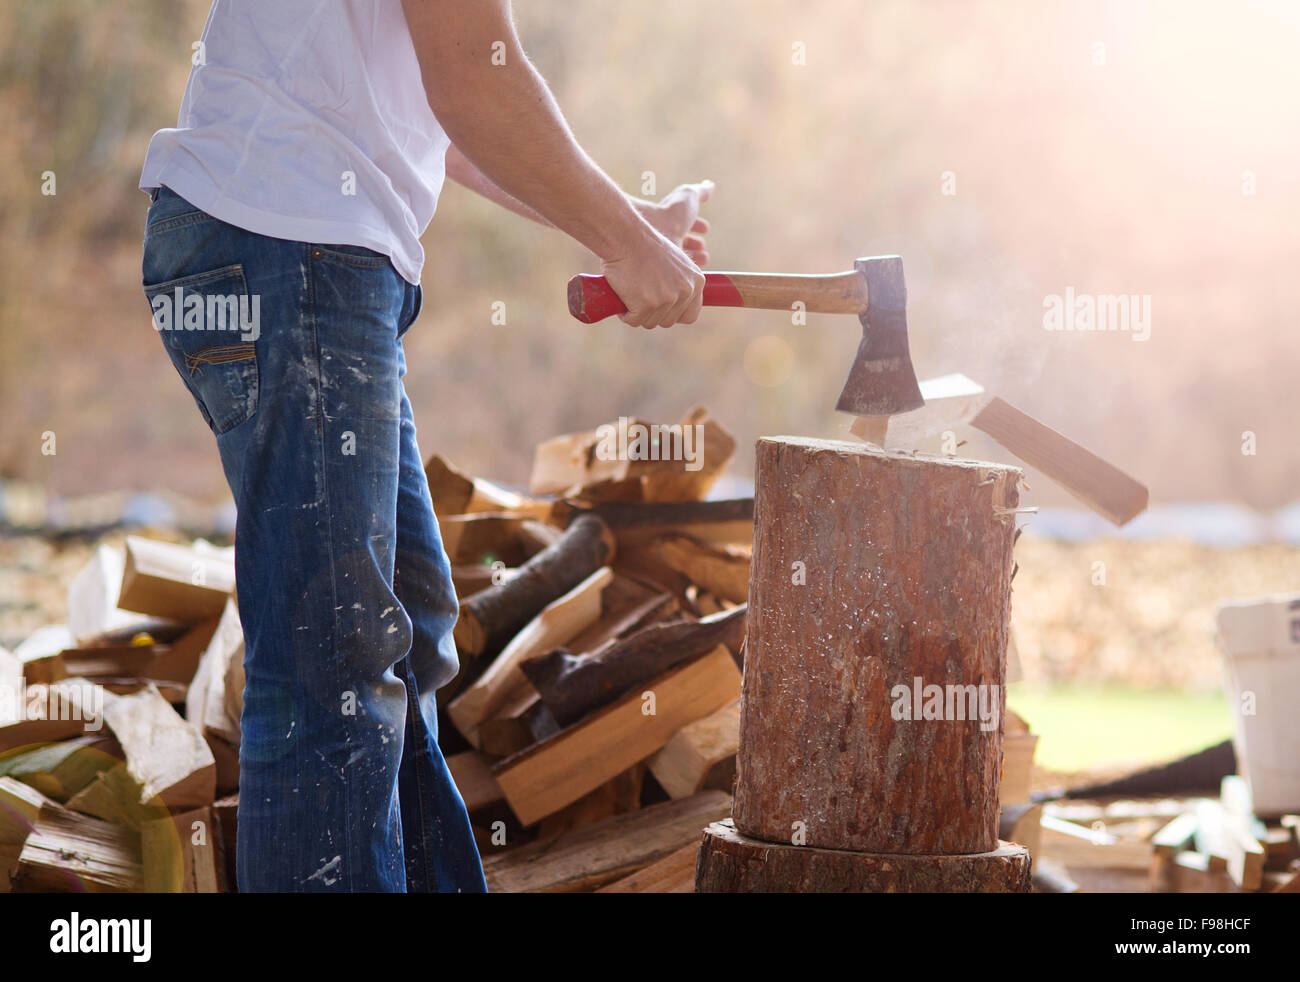 Detail of young man chopping wood in his backyard - Stock Image